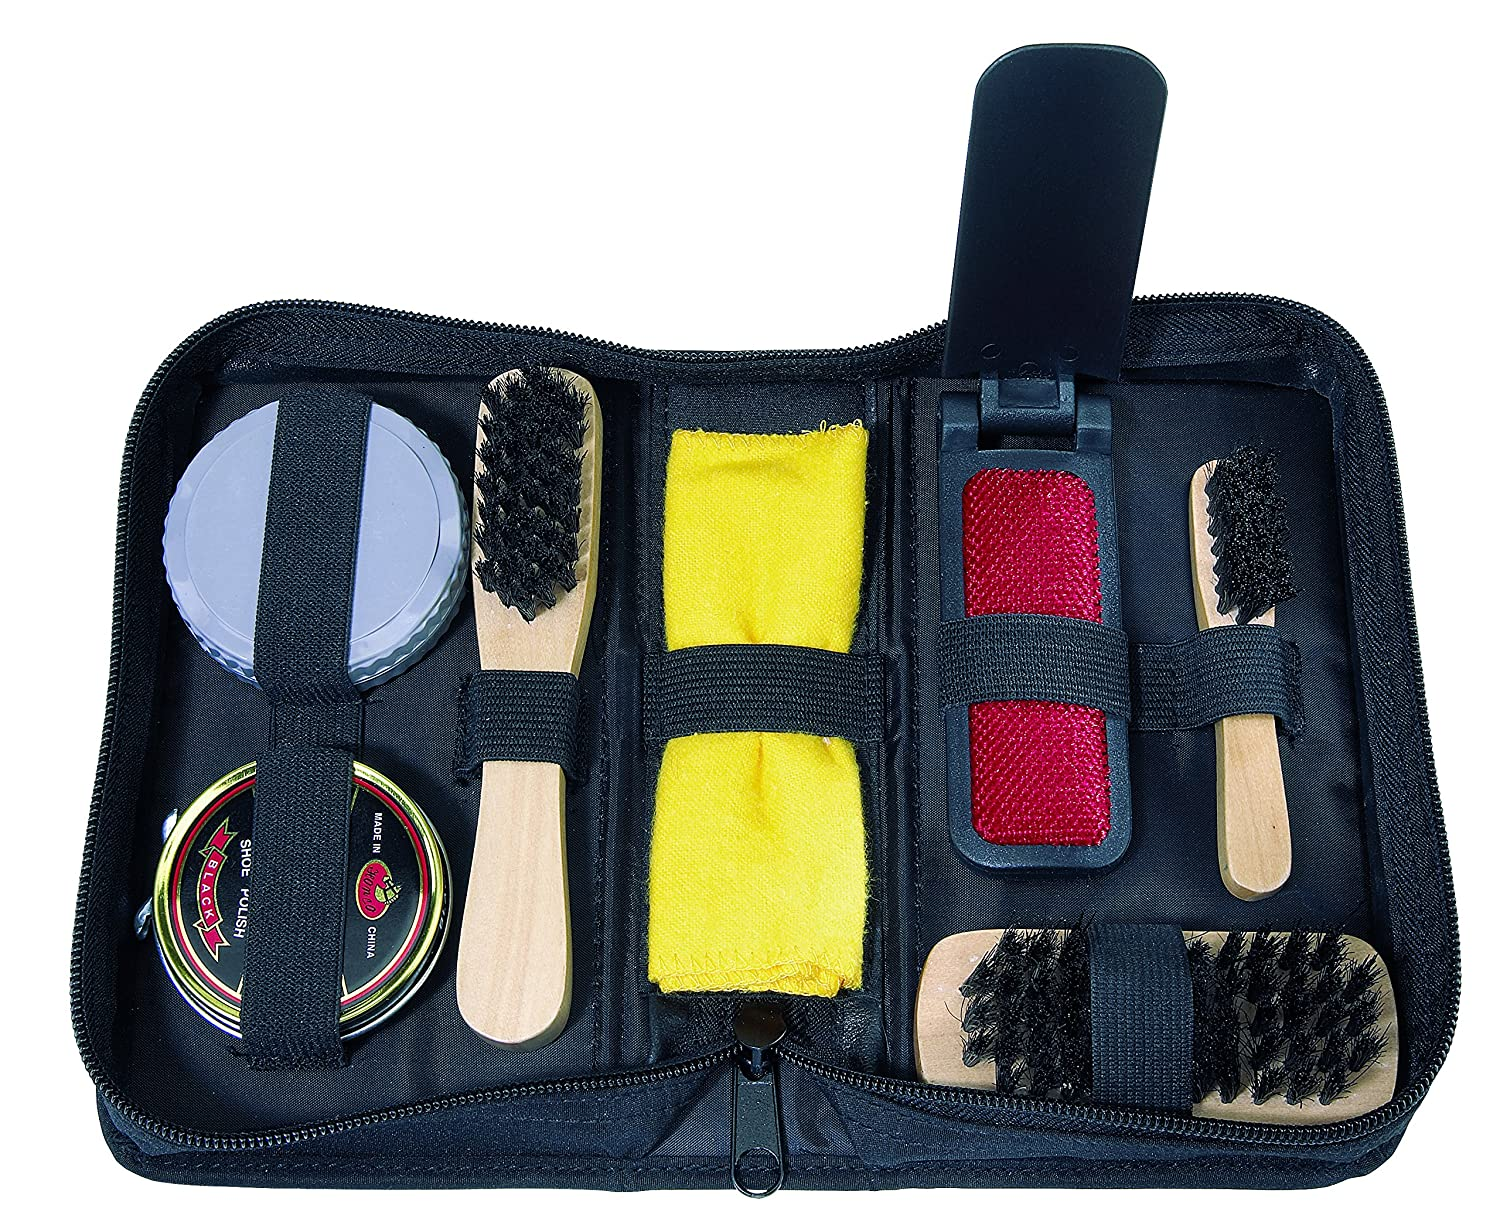 7Piece Shoe Shine Kit in Case Including Cream and 3brushes geschenkartikel-shopping SWITCH!